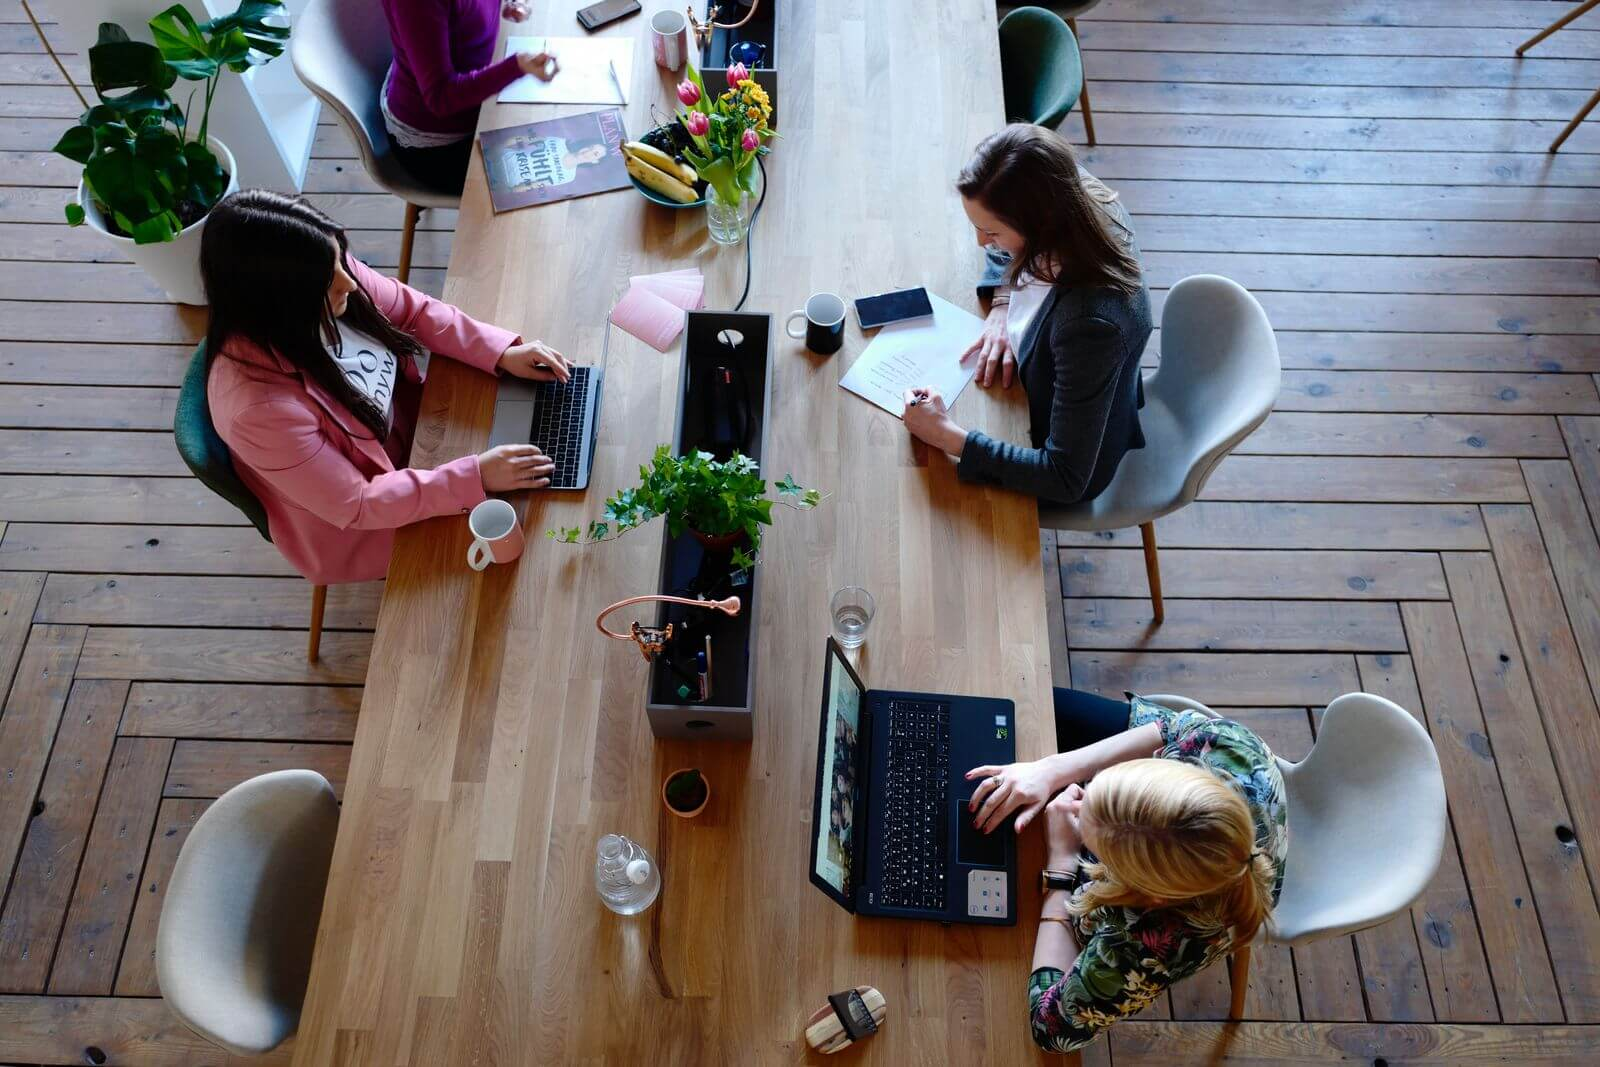 Women working at large, open desk